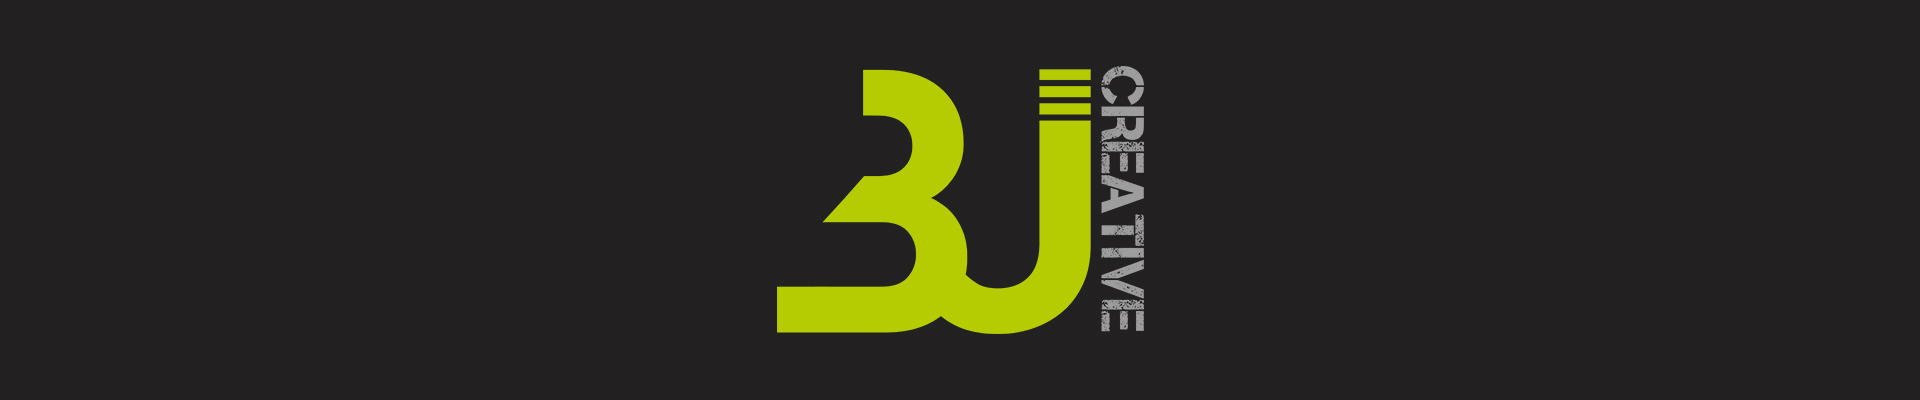 BJ Creative Stamford Design Agency Logo